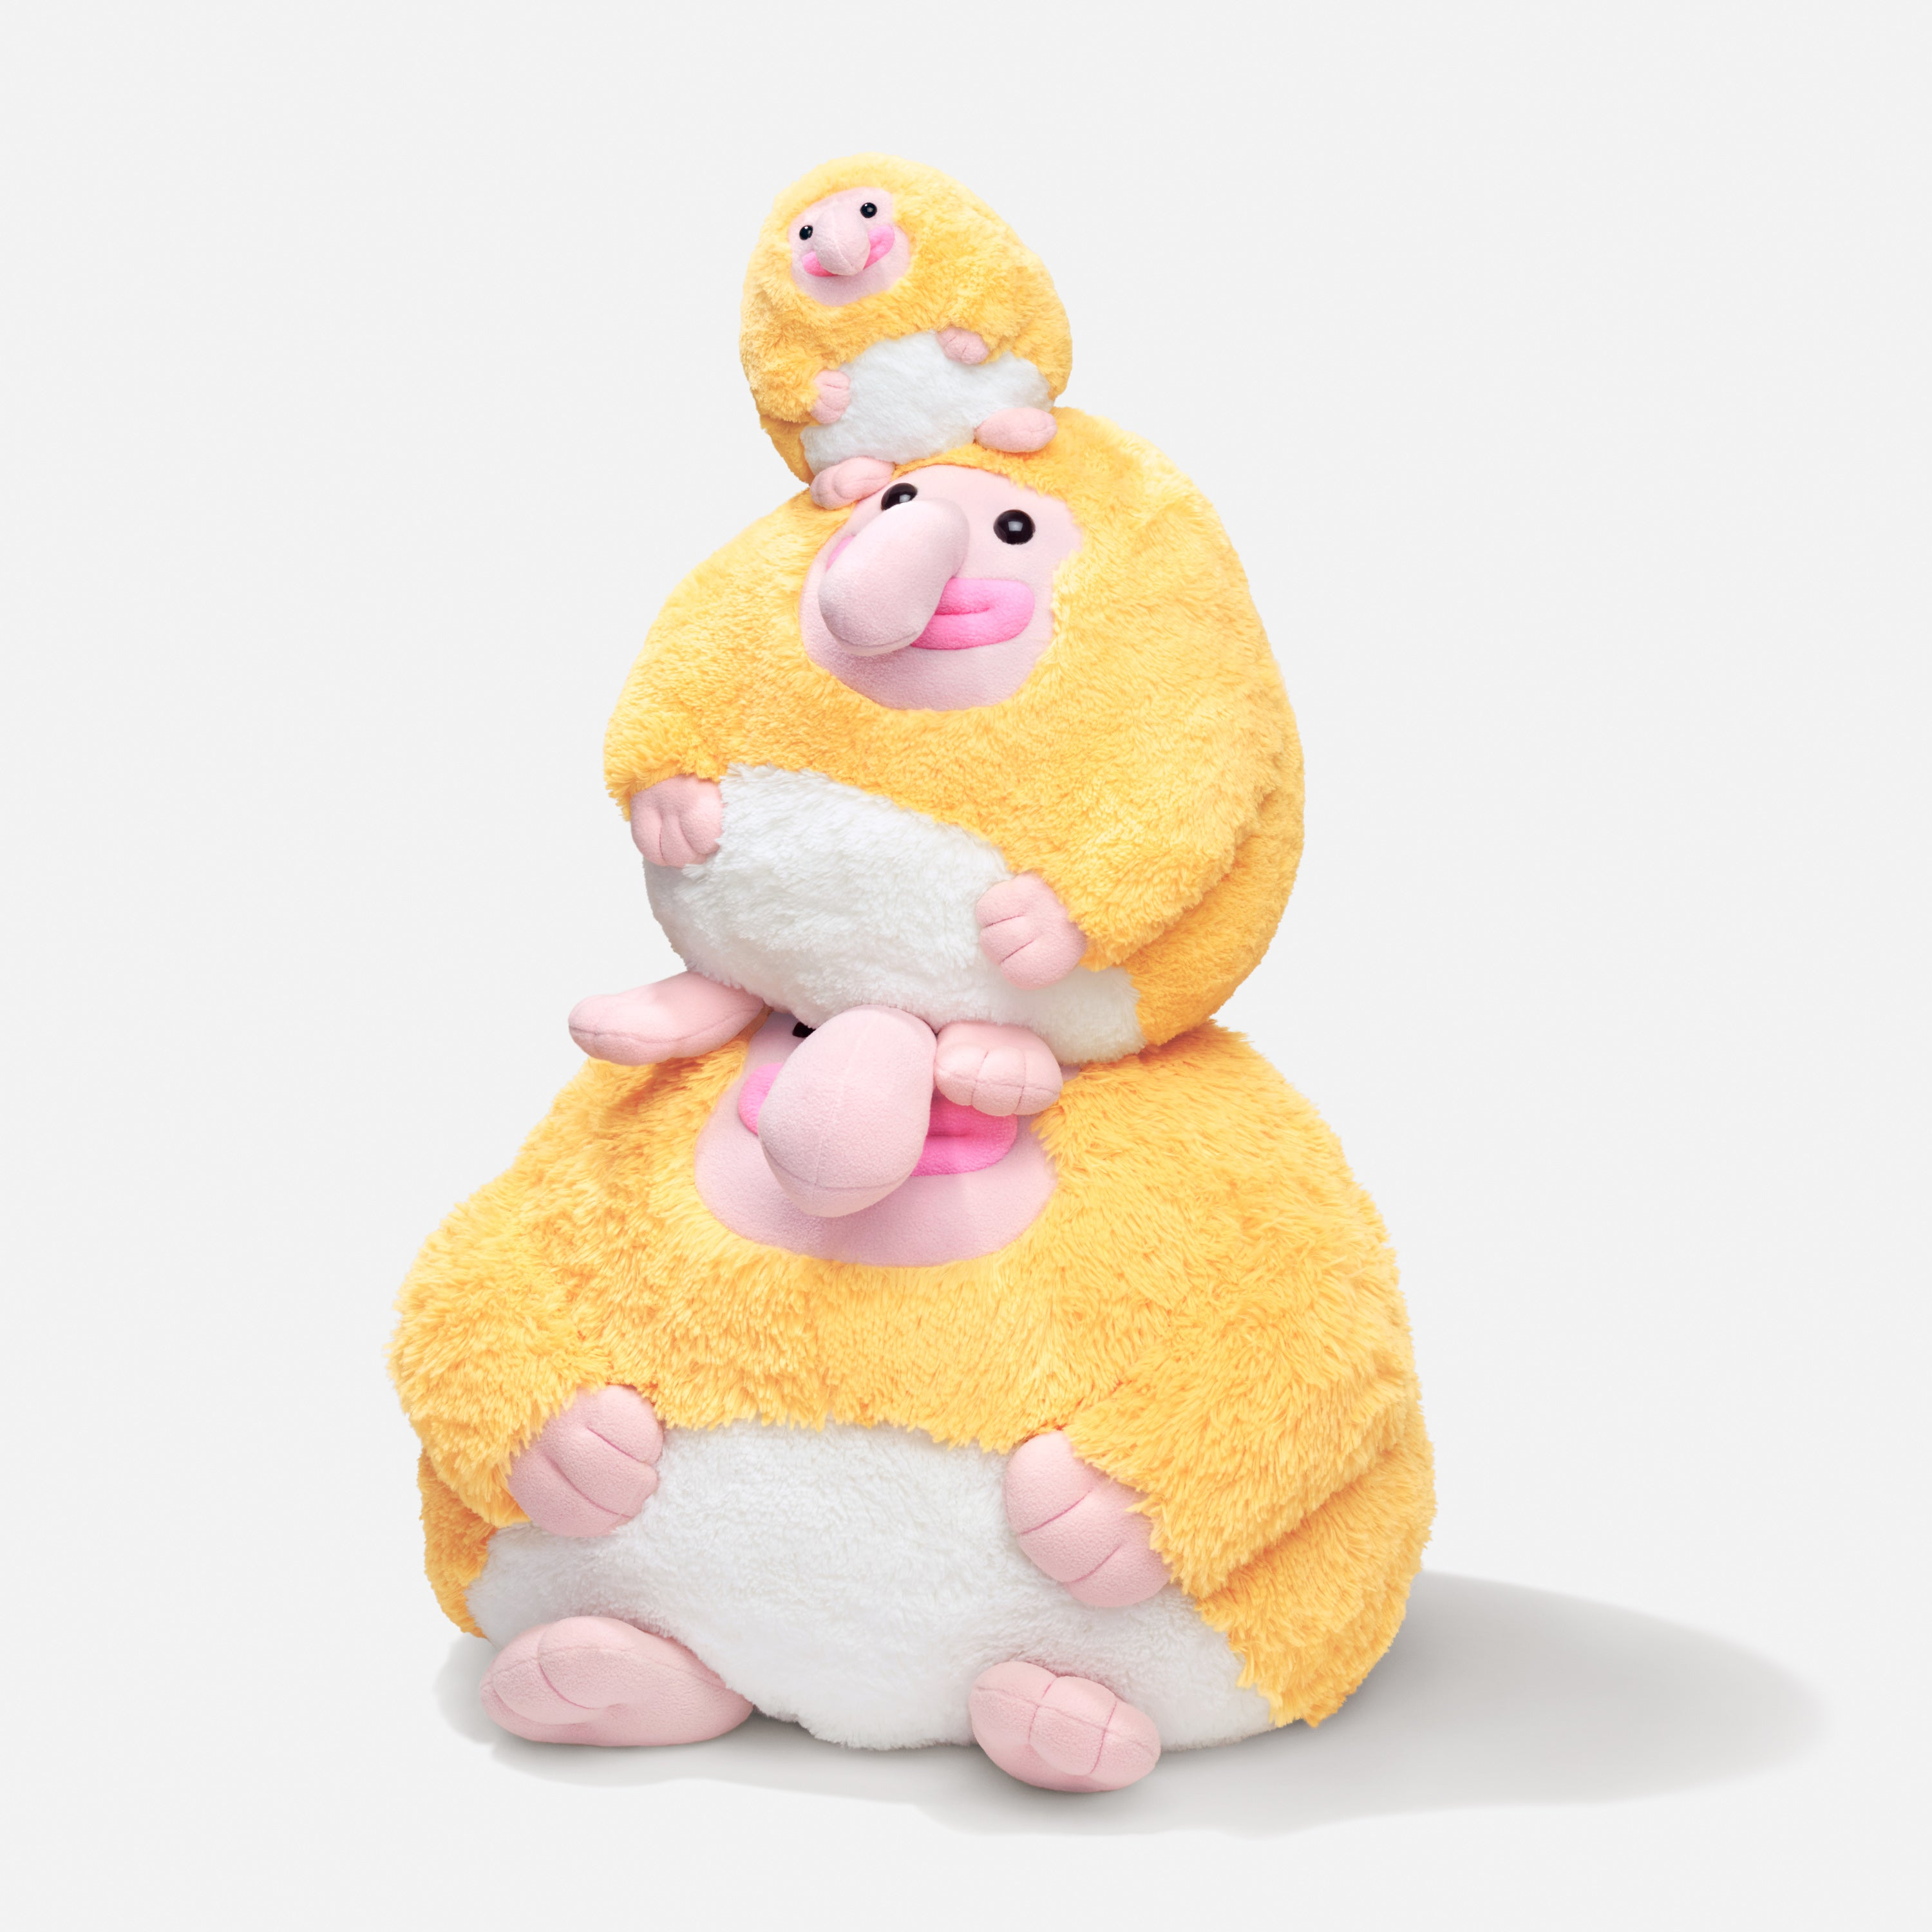 Blobby and Friends - monkey plushies